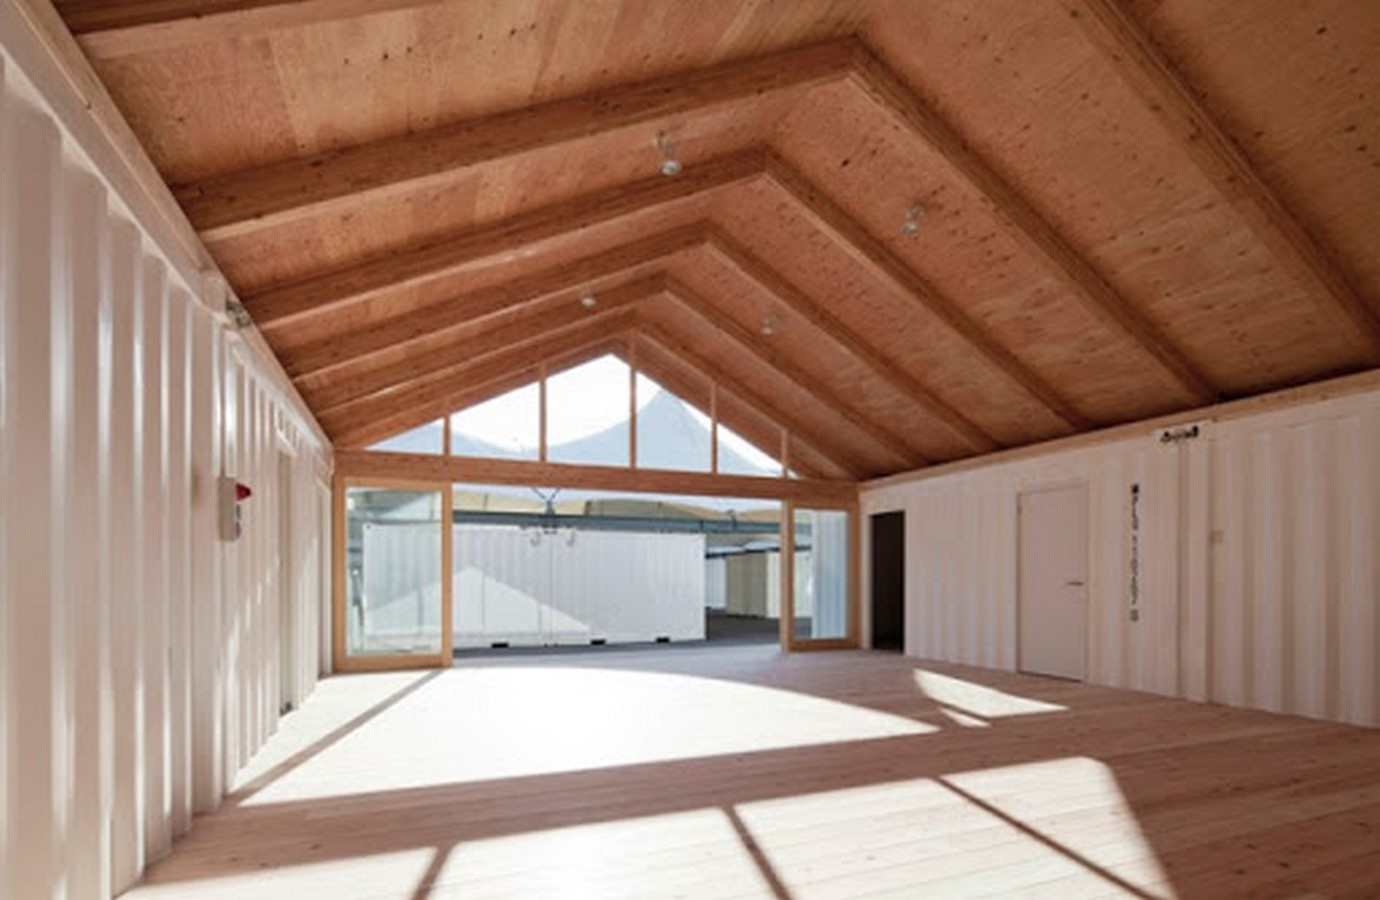 Onagawa Container by Shigeru Ban: Temporary Structures with Impactful Design Sheet9